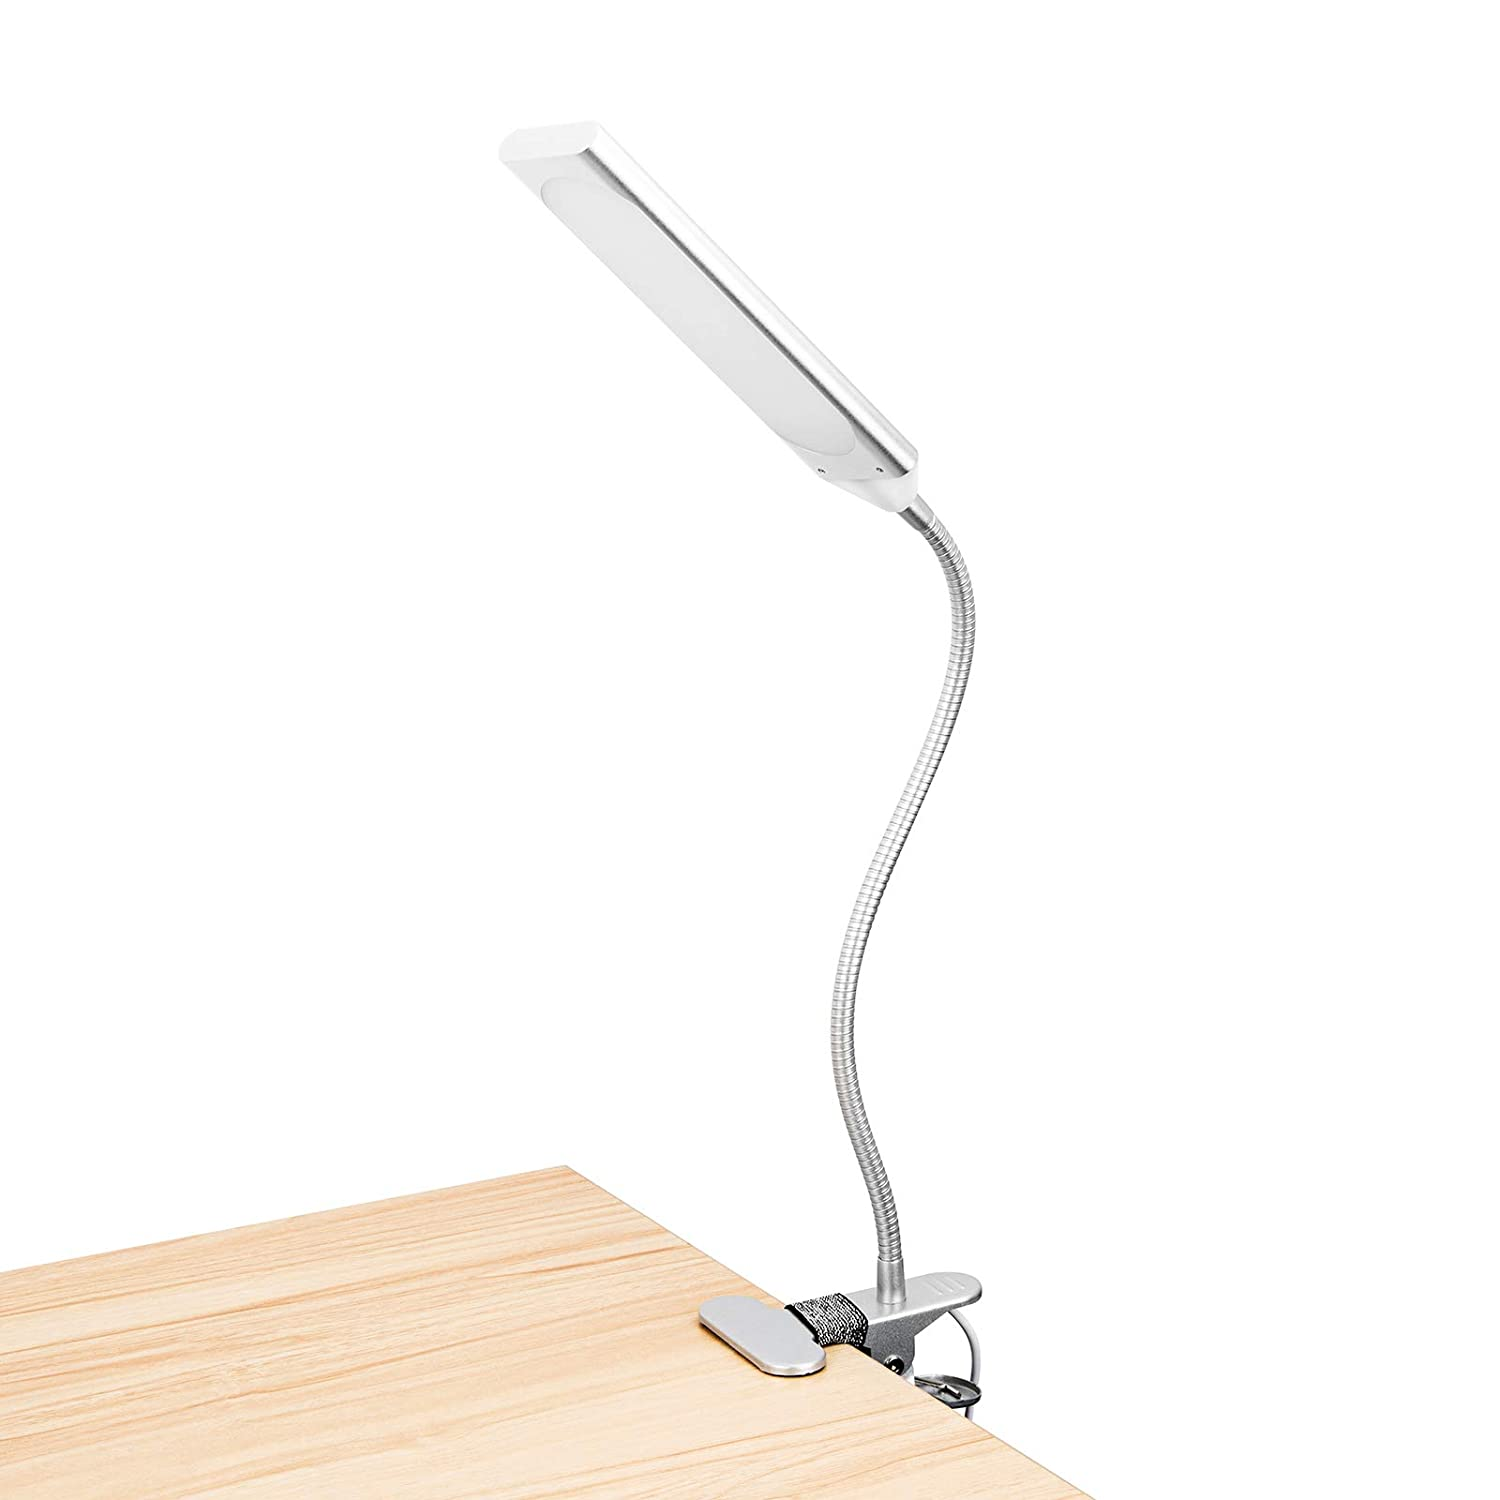 RAOYI LED Desk Lamp Eye-Caring Table Lamps, Dimmable Office Lamp with USB Charging Port, Touch Control Sensitive, 5 Color Modes, Black, 12W LAM10A